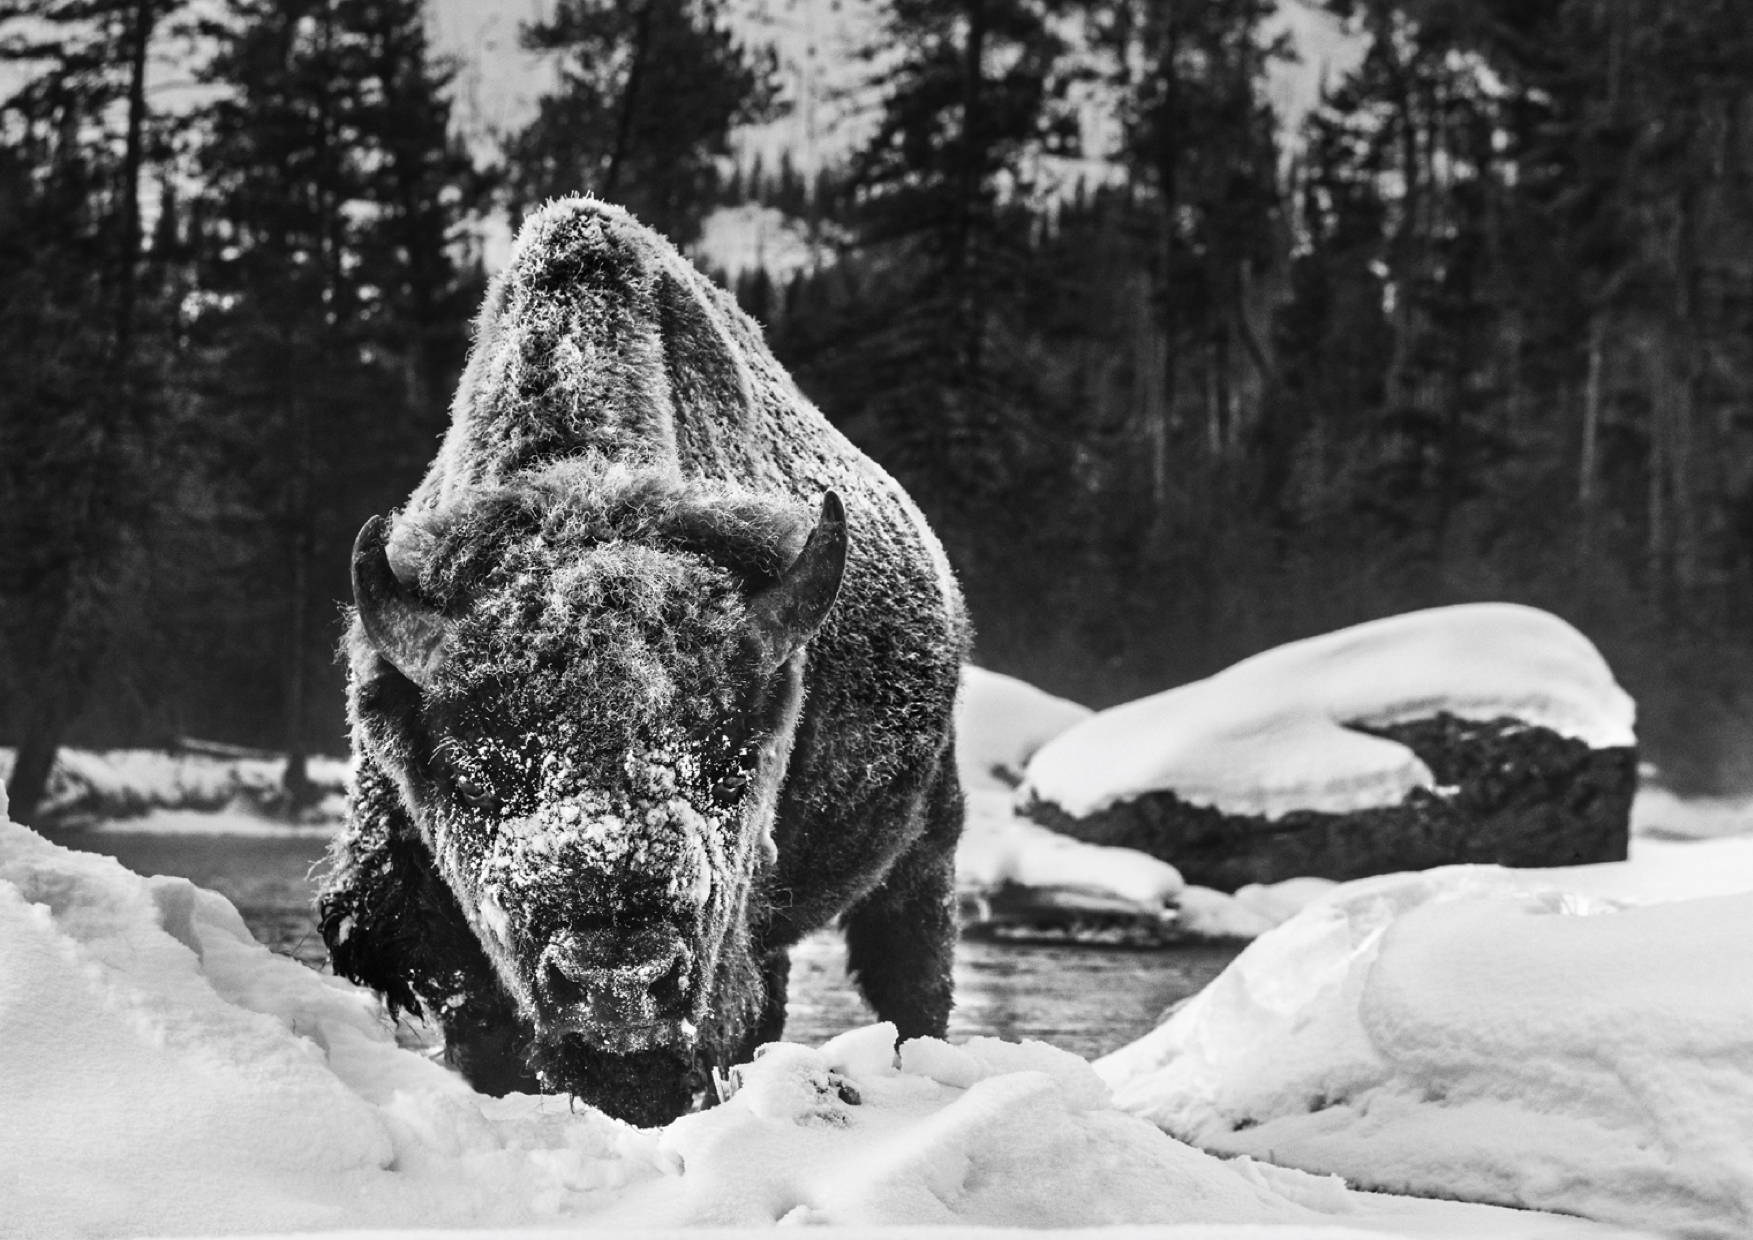 DAvid Yarrow Buffalo Soldier in Yellowstone national park. Sorrel Sky Gallery